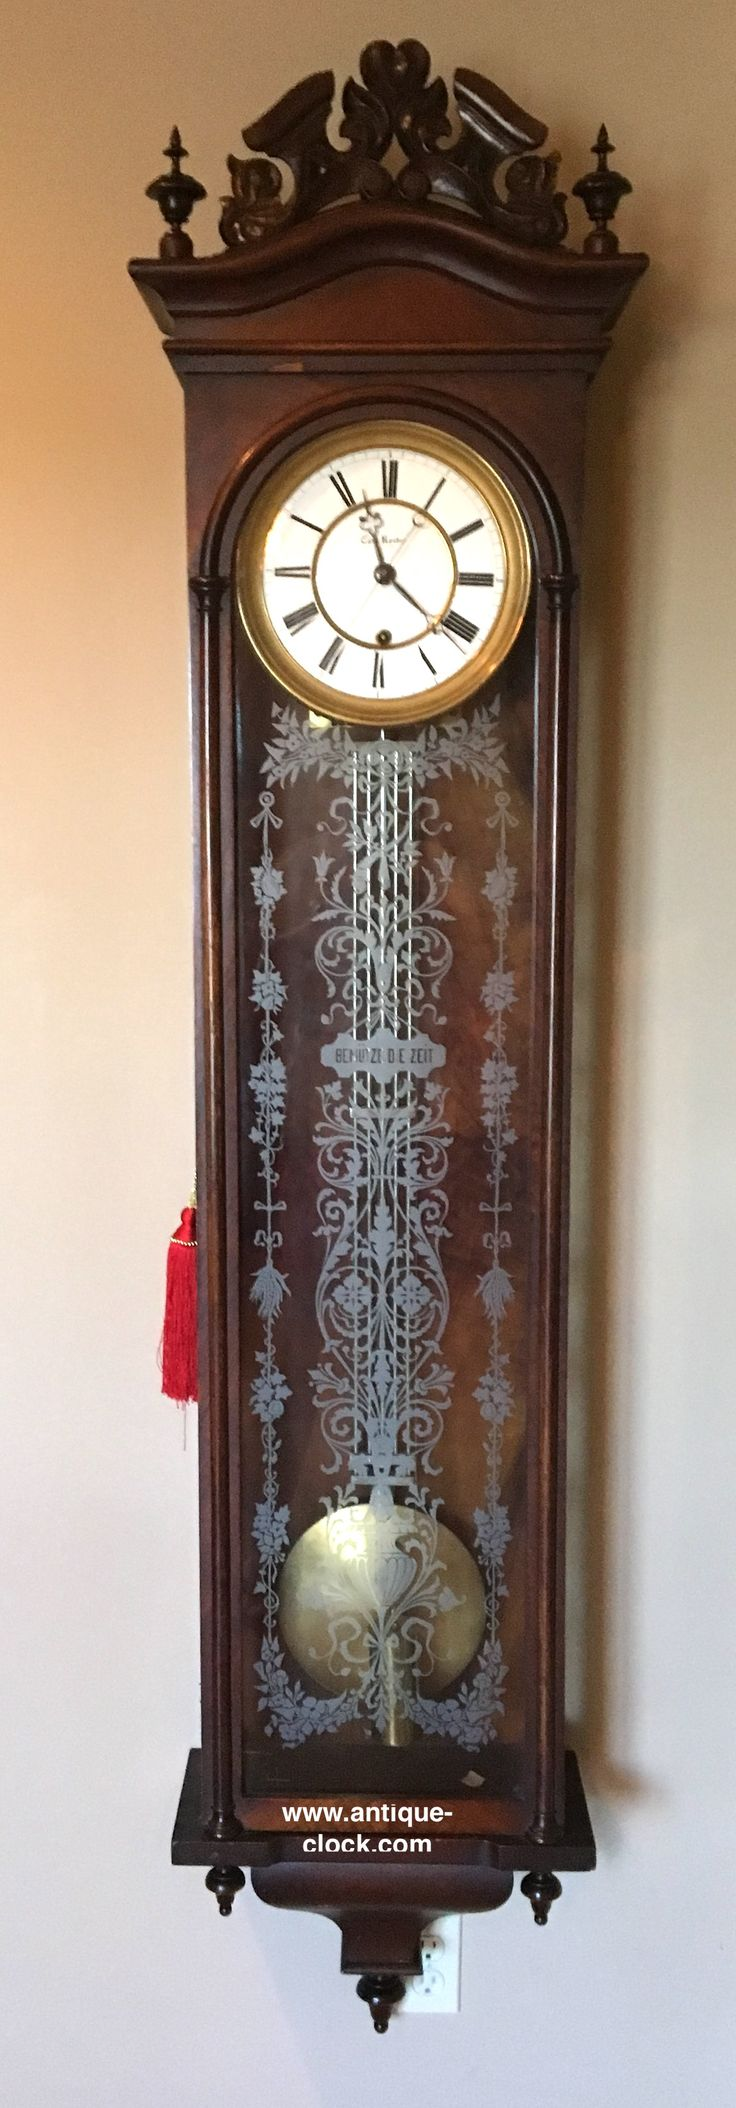 309 best lenzkirch clocks images on pinterest vienna wall high quality antique clocks for sale amipublicfo Image collections